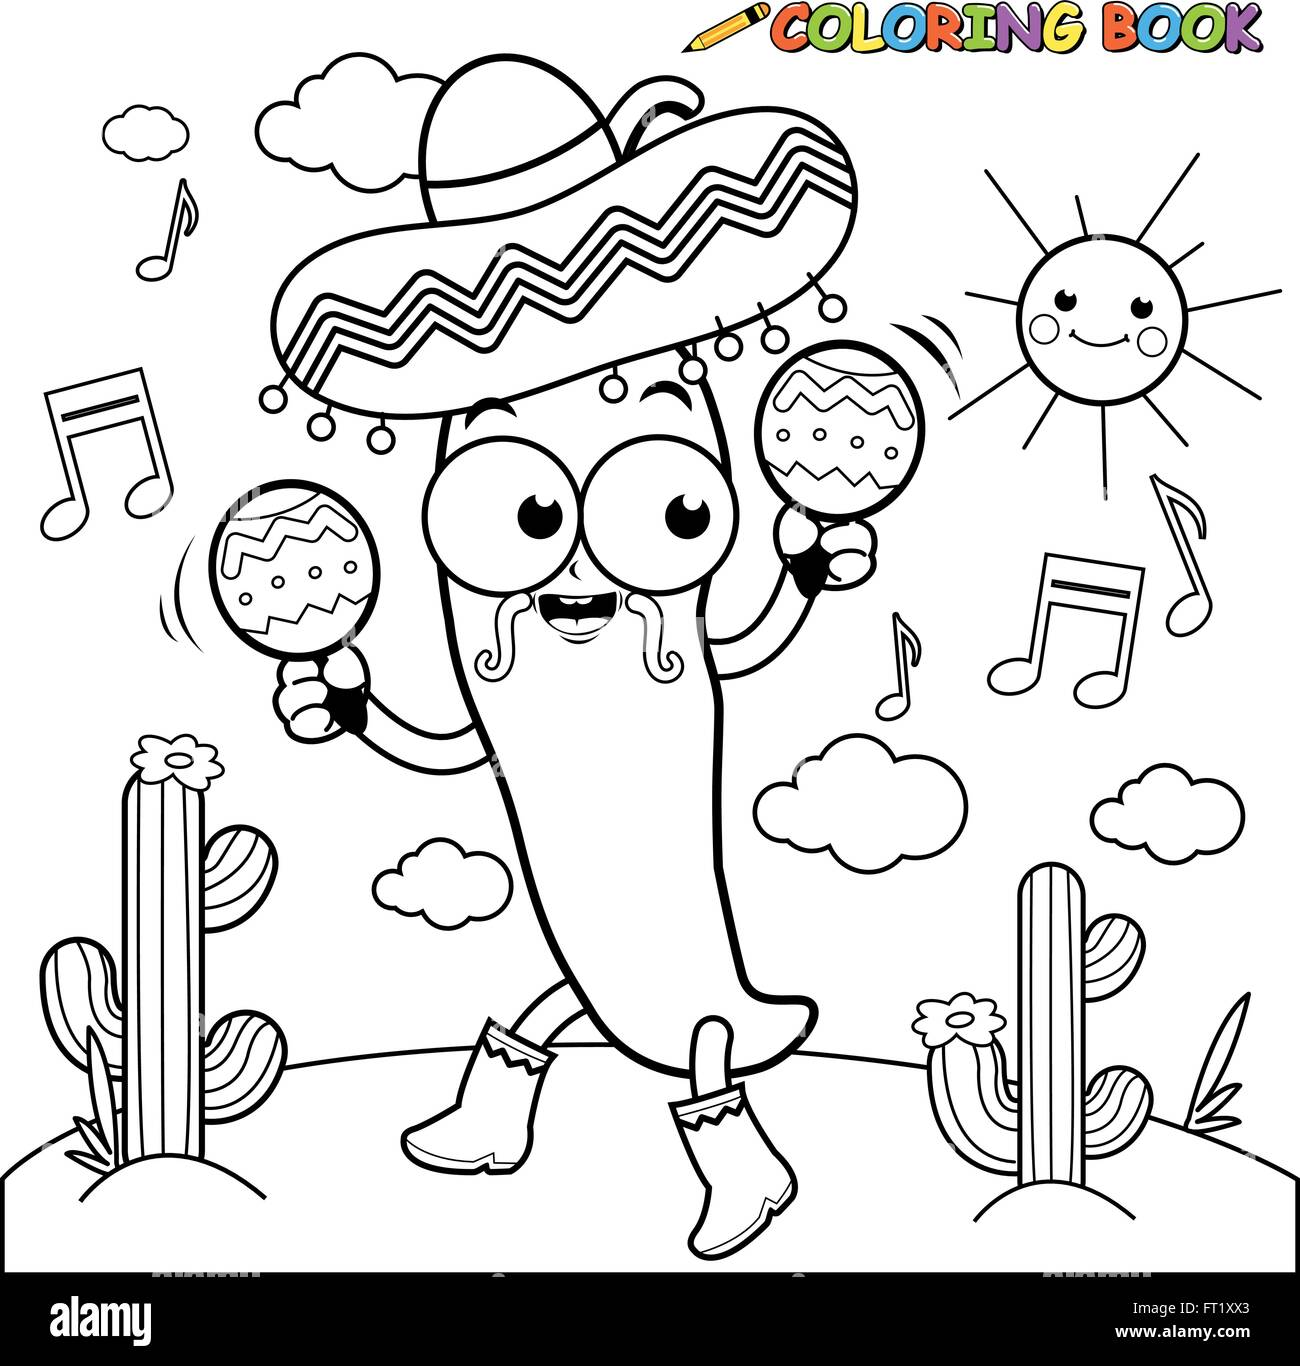 Mariachi Chili Pepper With Maracas Coloring Page Stock